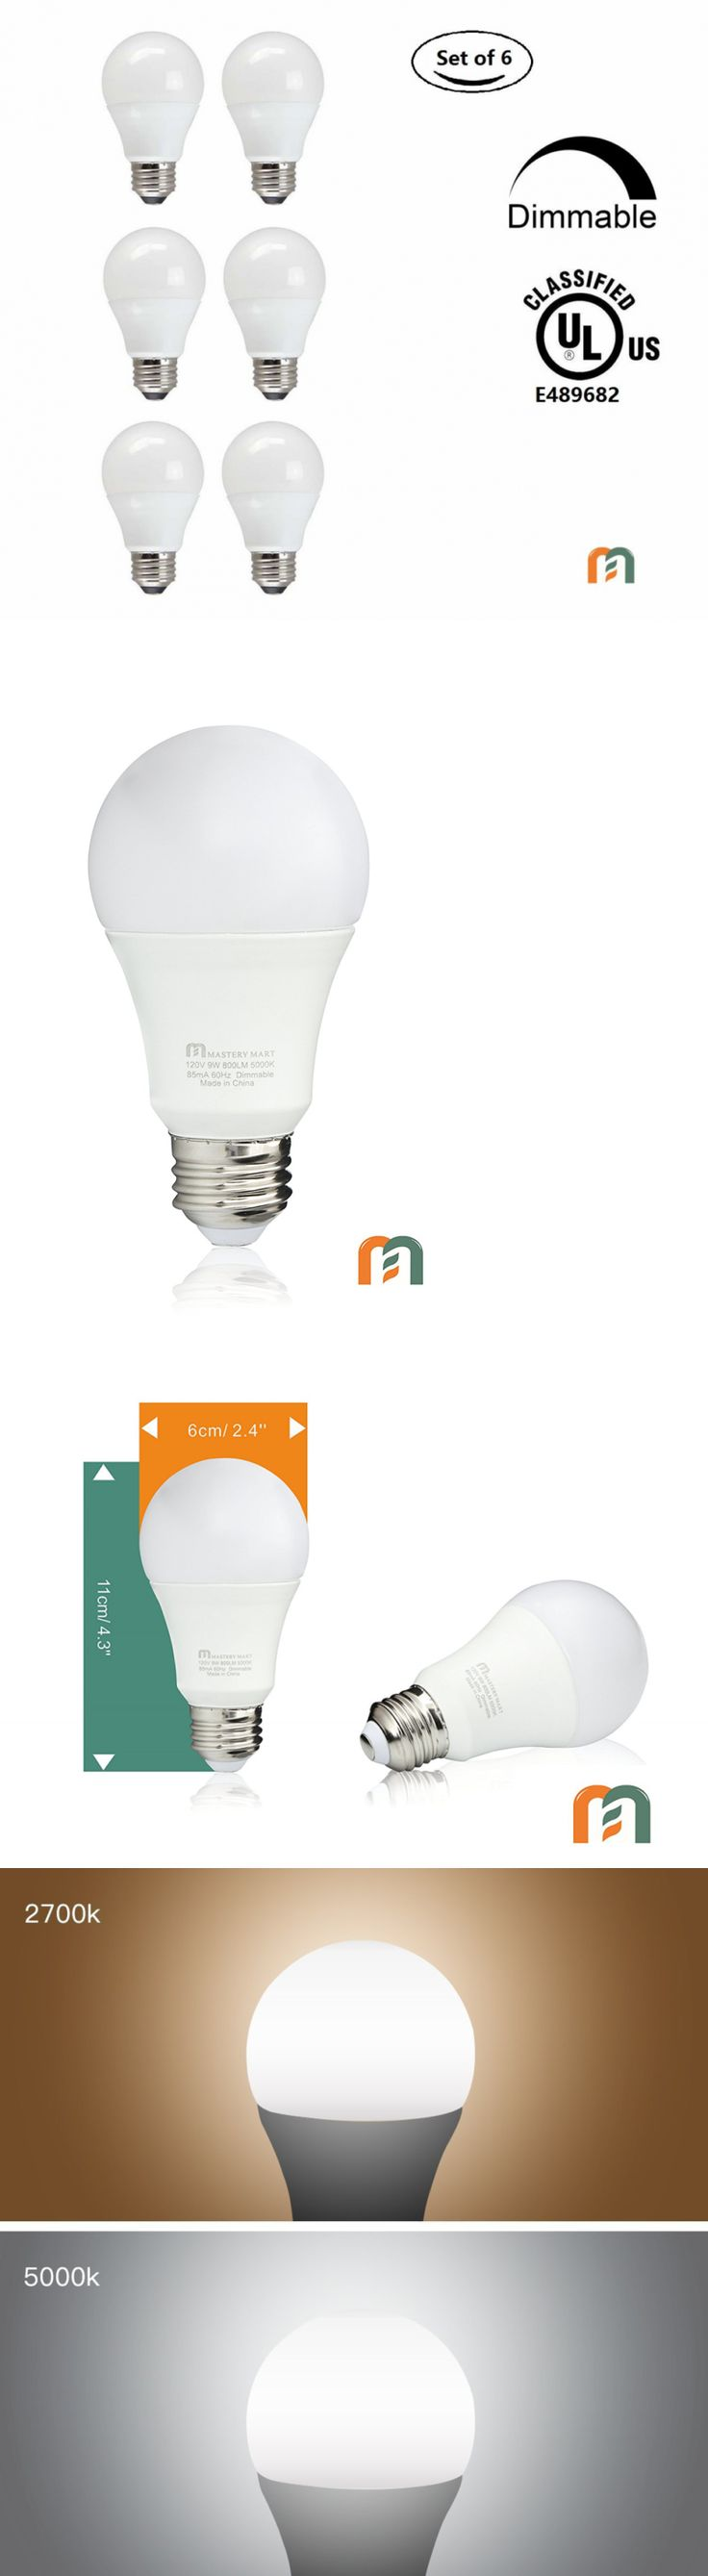 1000 images about lightbulb things on pinterest lightbulbs bulbs - Light Bulbs 20706 Led Light Bulbs 9 Watt 60 Watt Equivalent A19